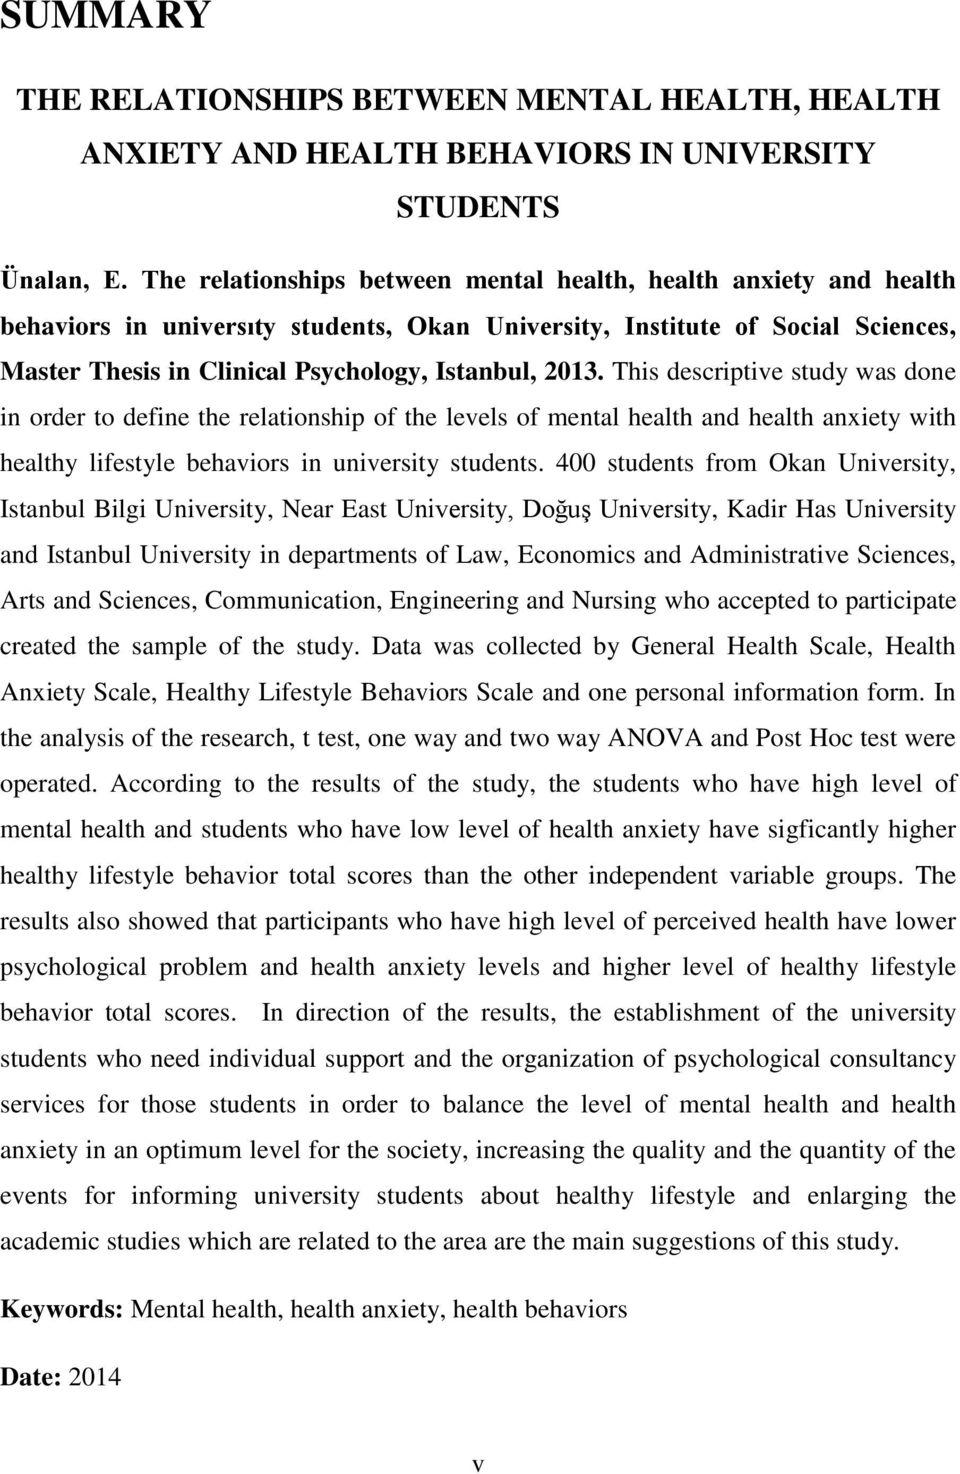 2013. This descriptive study was done in order to define the relationship of the levels of mental health and health anxiety with healthy lifestyle behaviors in university students.